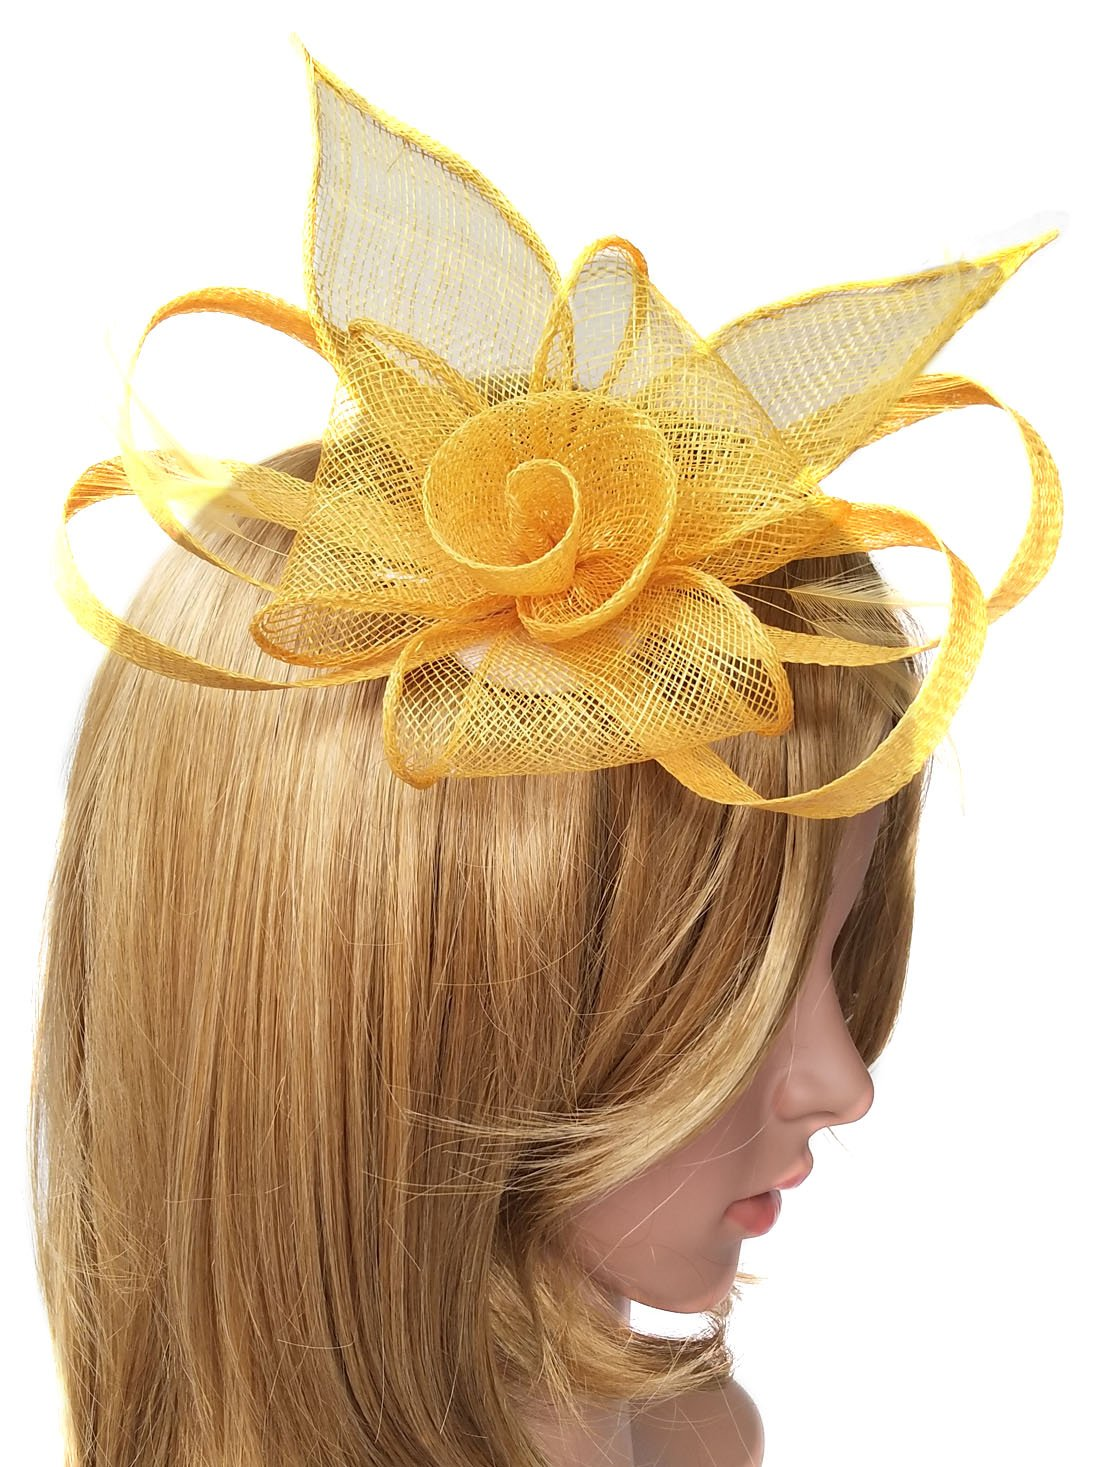 Biruil Sinamay Fascinator Hat Feather Mesh Pillbox Flower Derby Tea Party Headband (Style 1 Yellow)